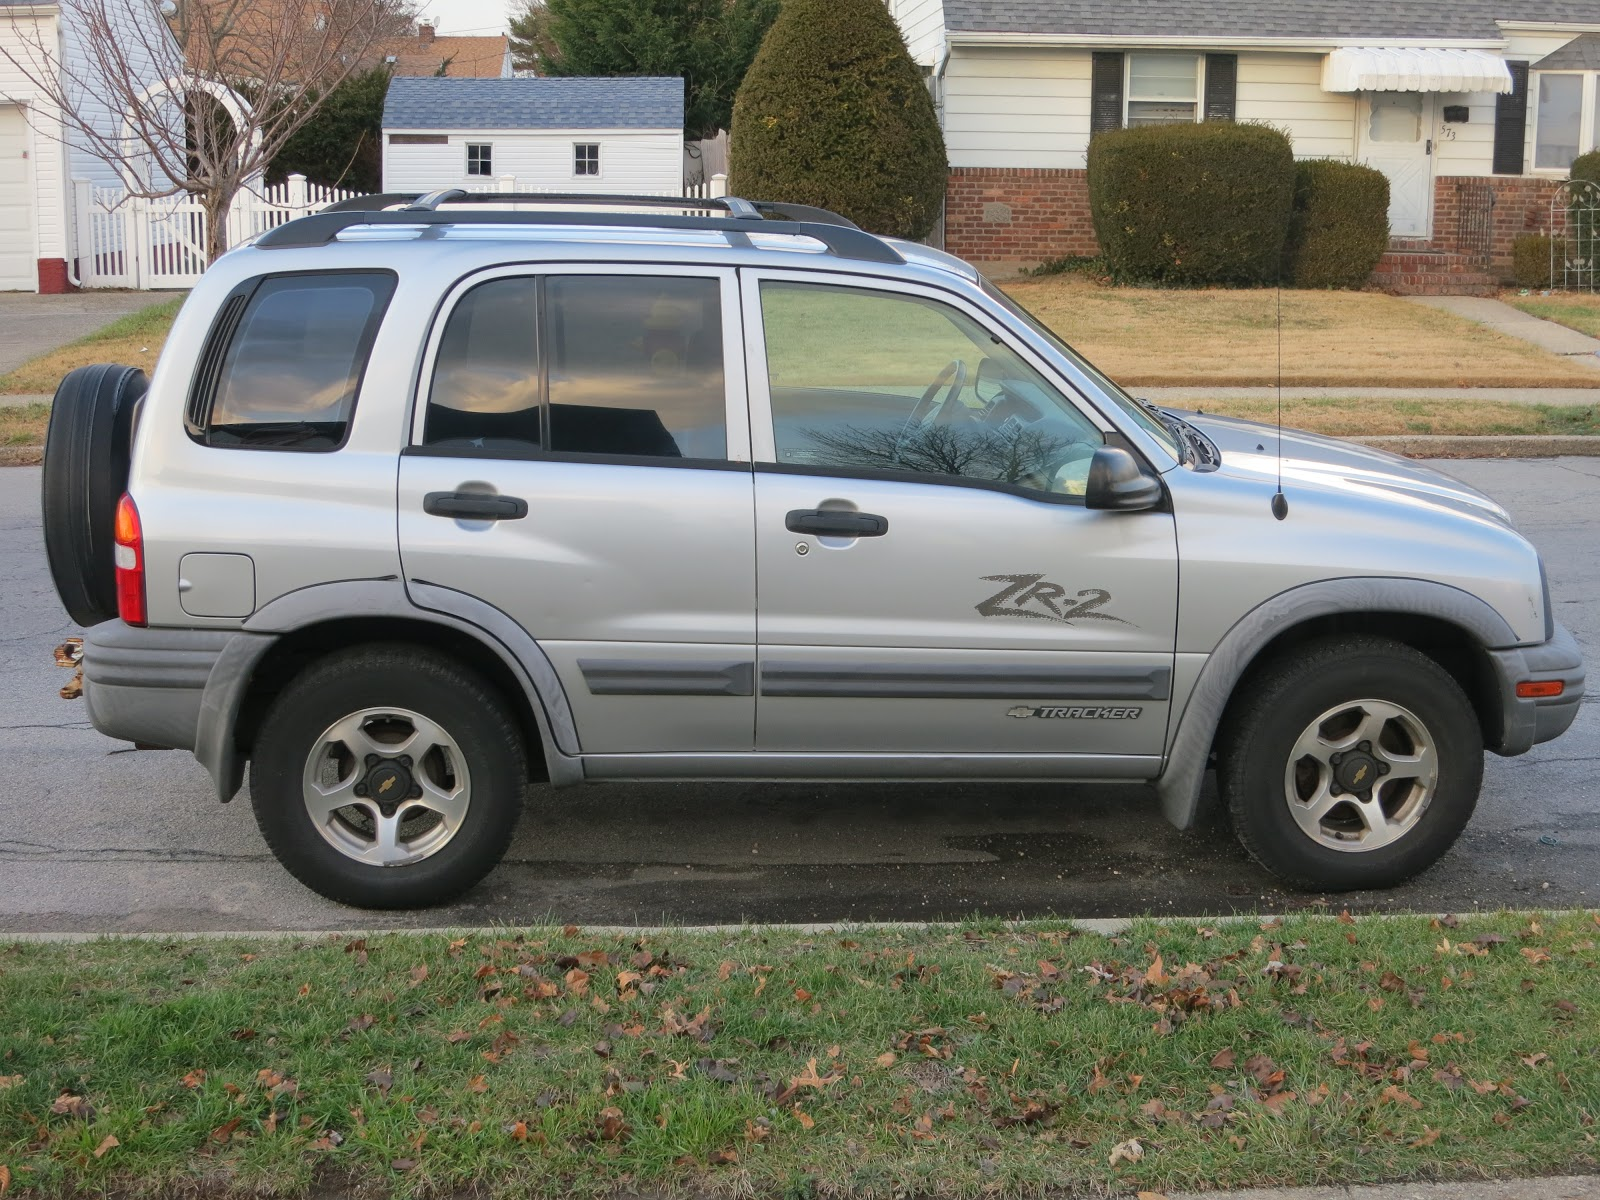 The chevrolet tracker was basically a re badged geo it has much the same look and feel but under the bow tie instead it did not sell well as a chevrolet